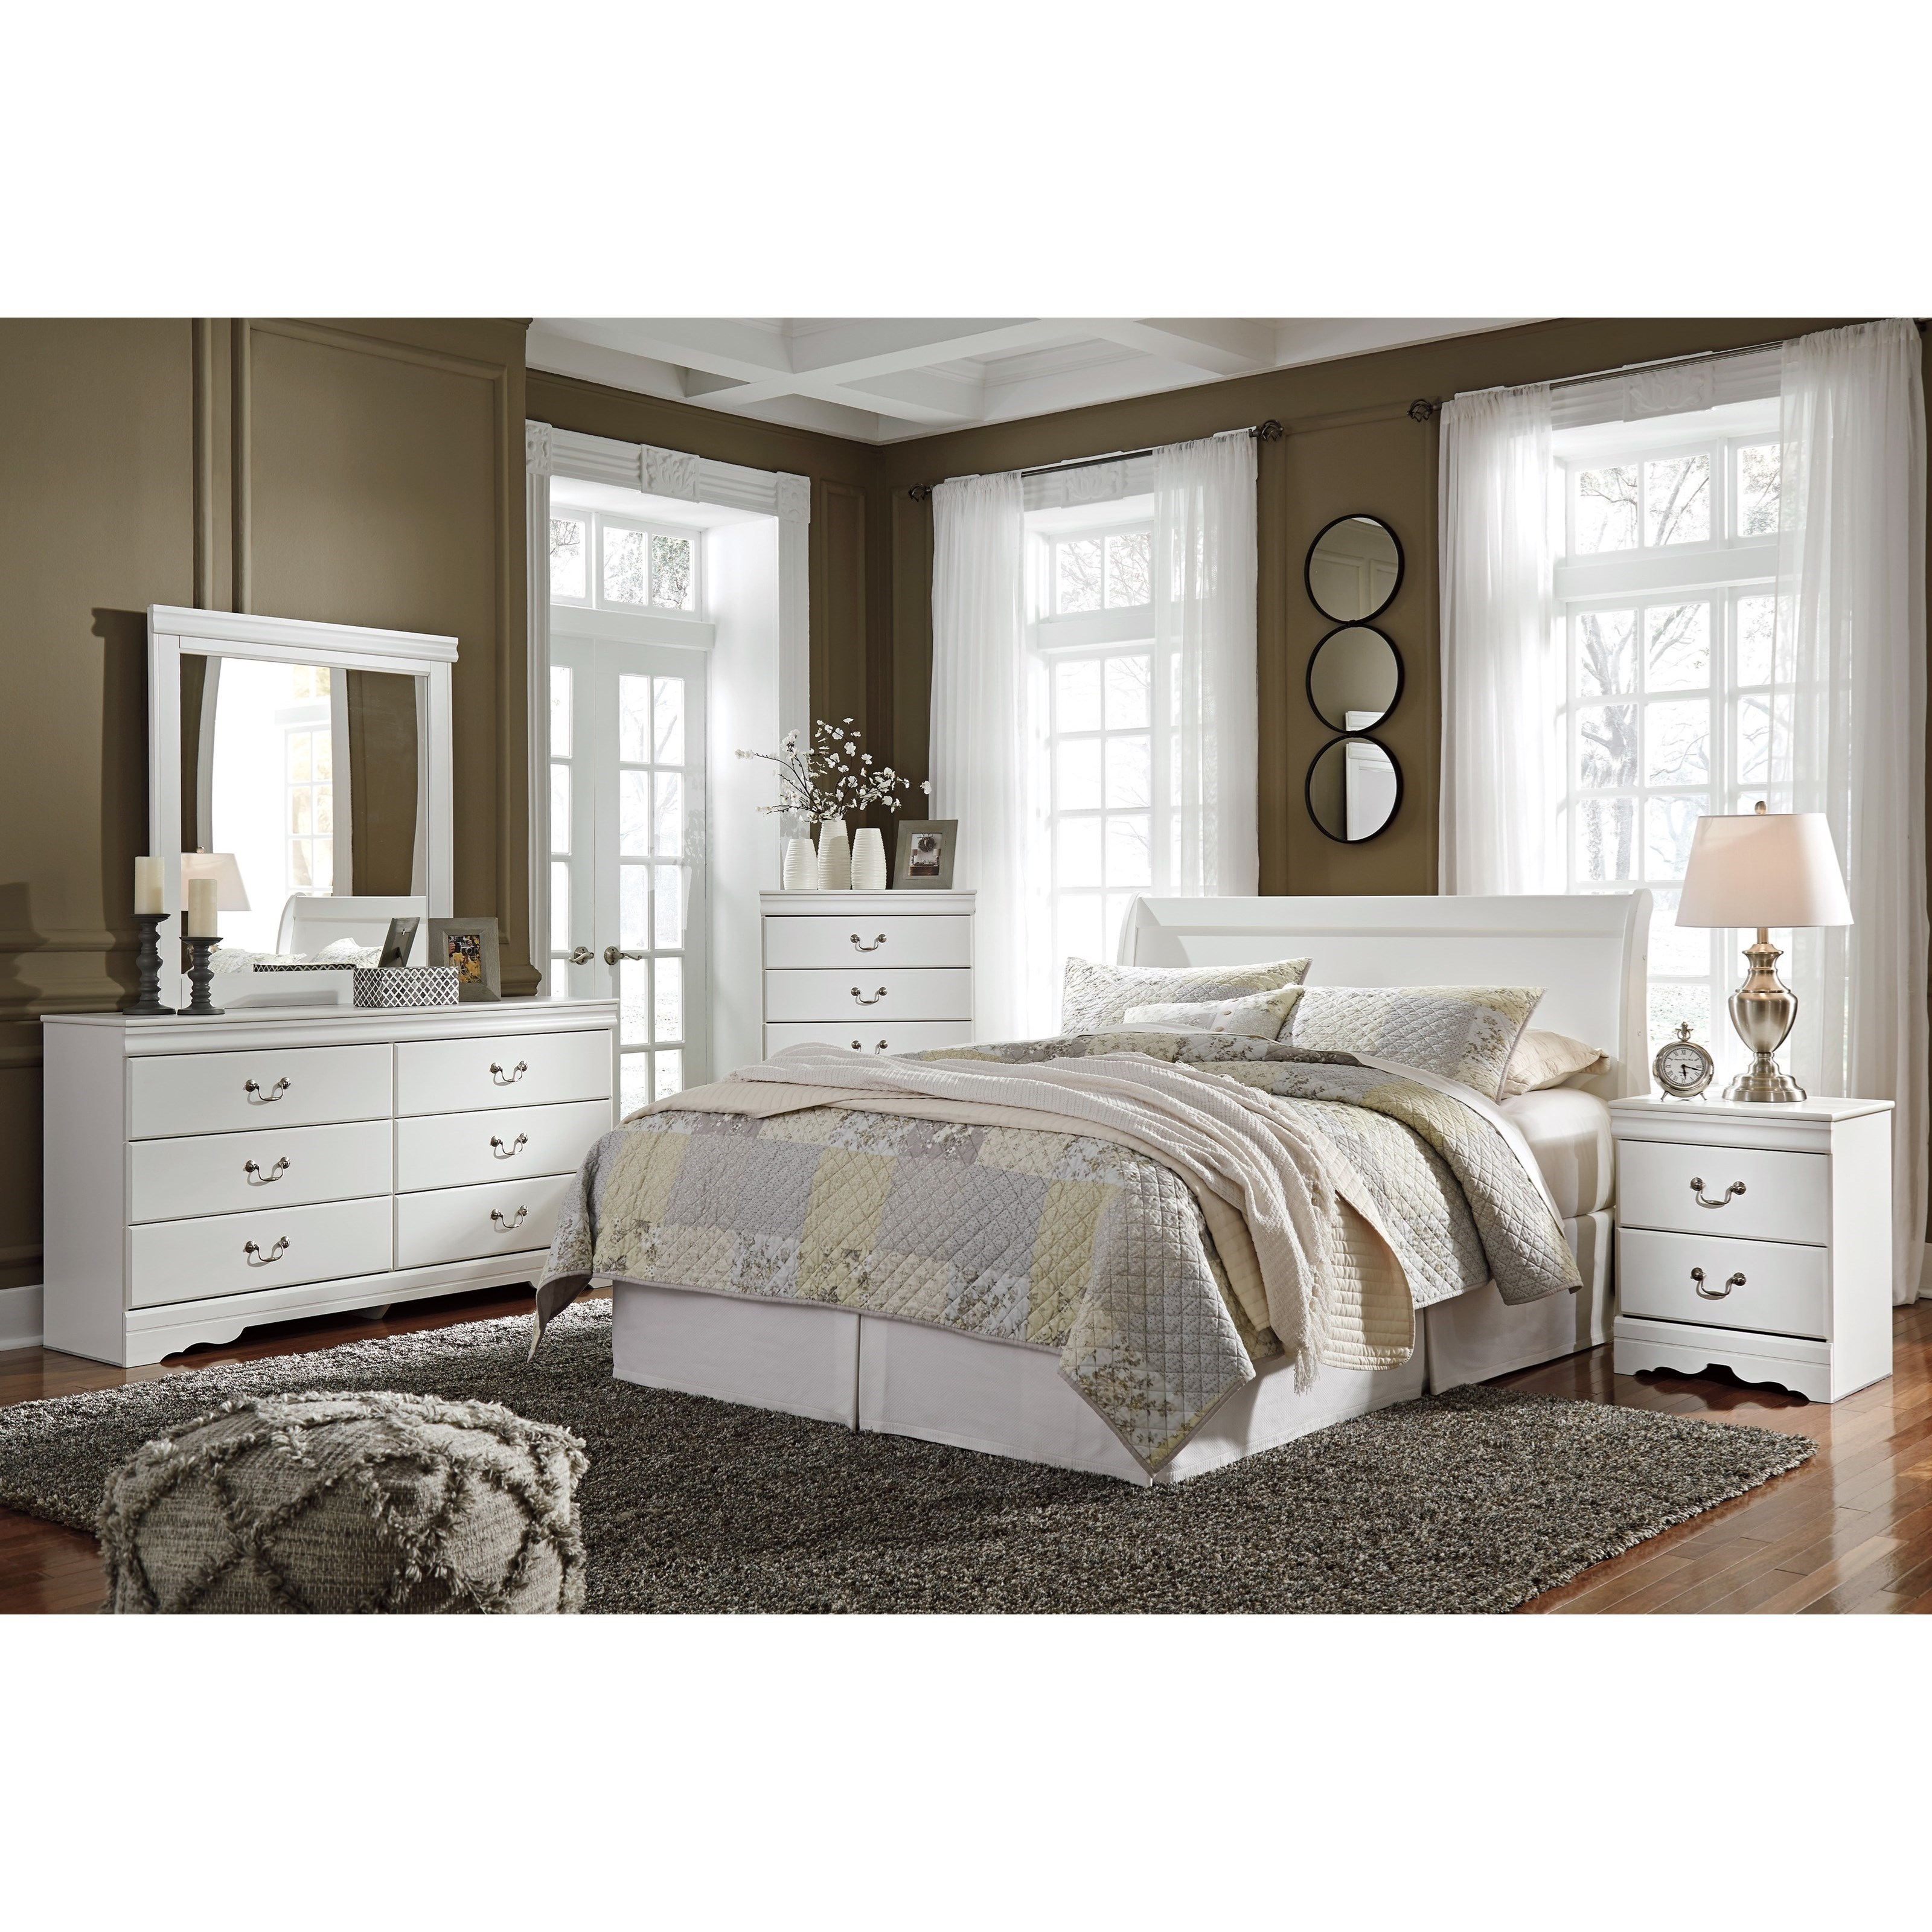 Anarasia Queen Bedroom Group by Signature Design by Ashley at Furniture Barn